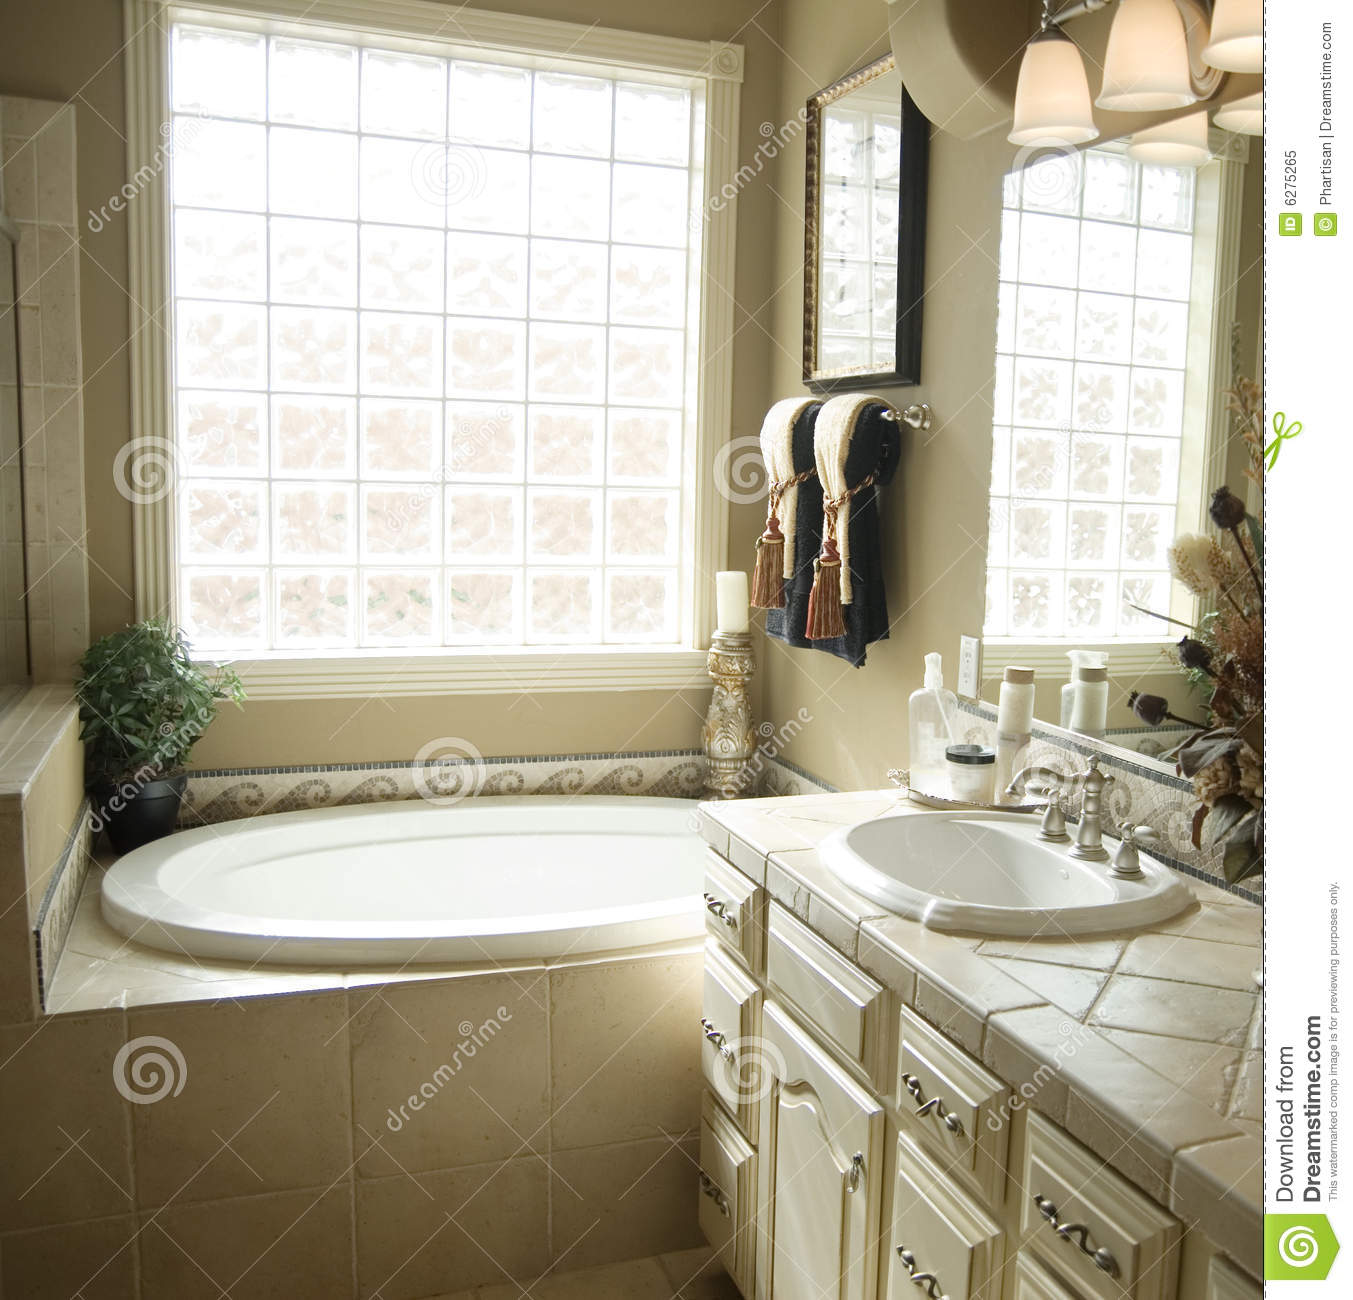 Beautiful bathroom interior design stock image image for Beautiful toilet designs